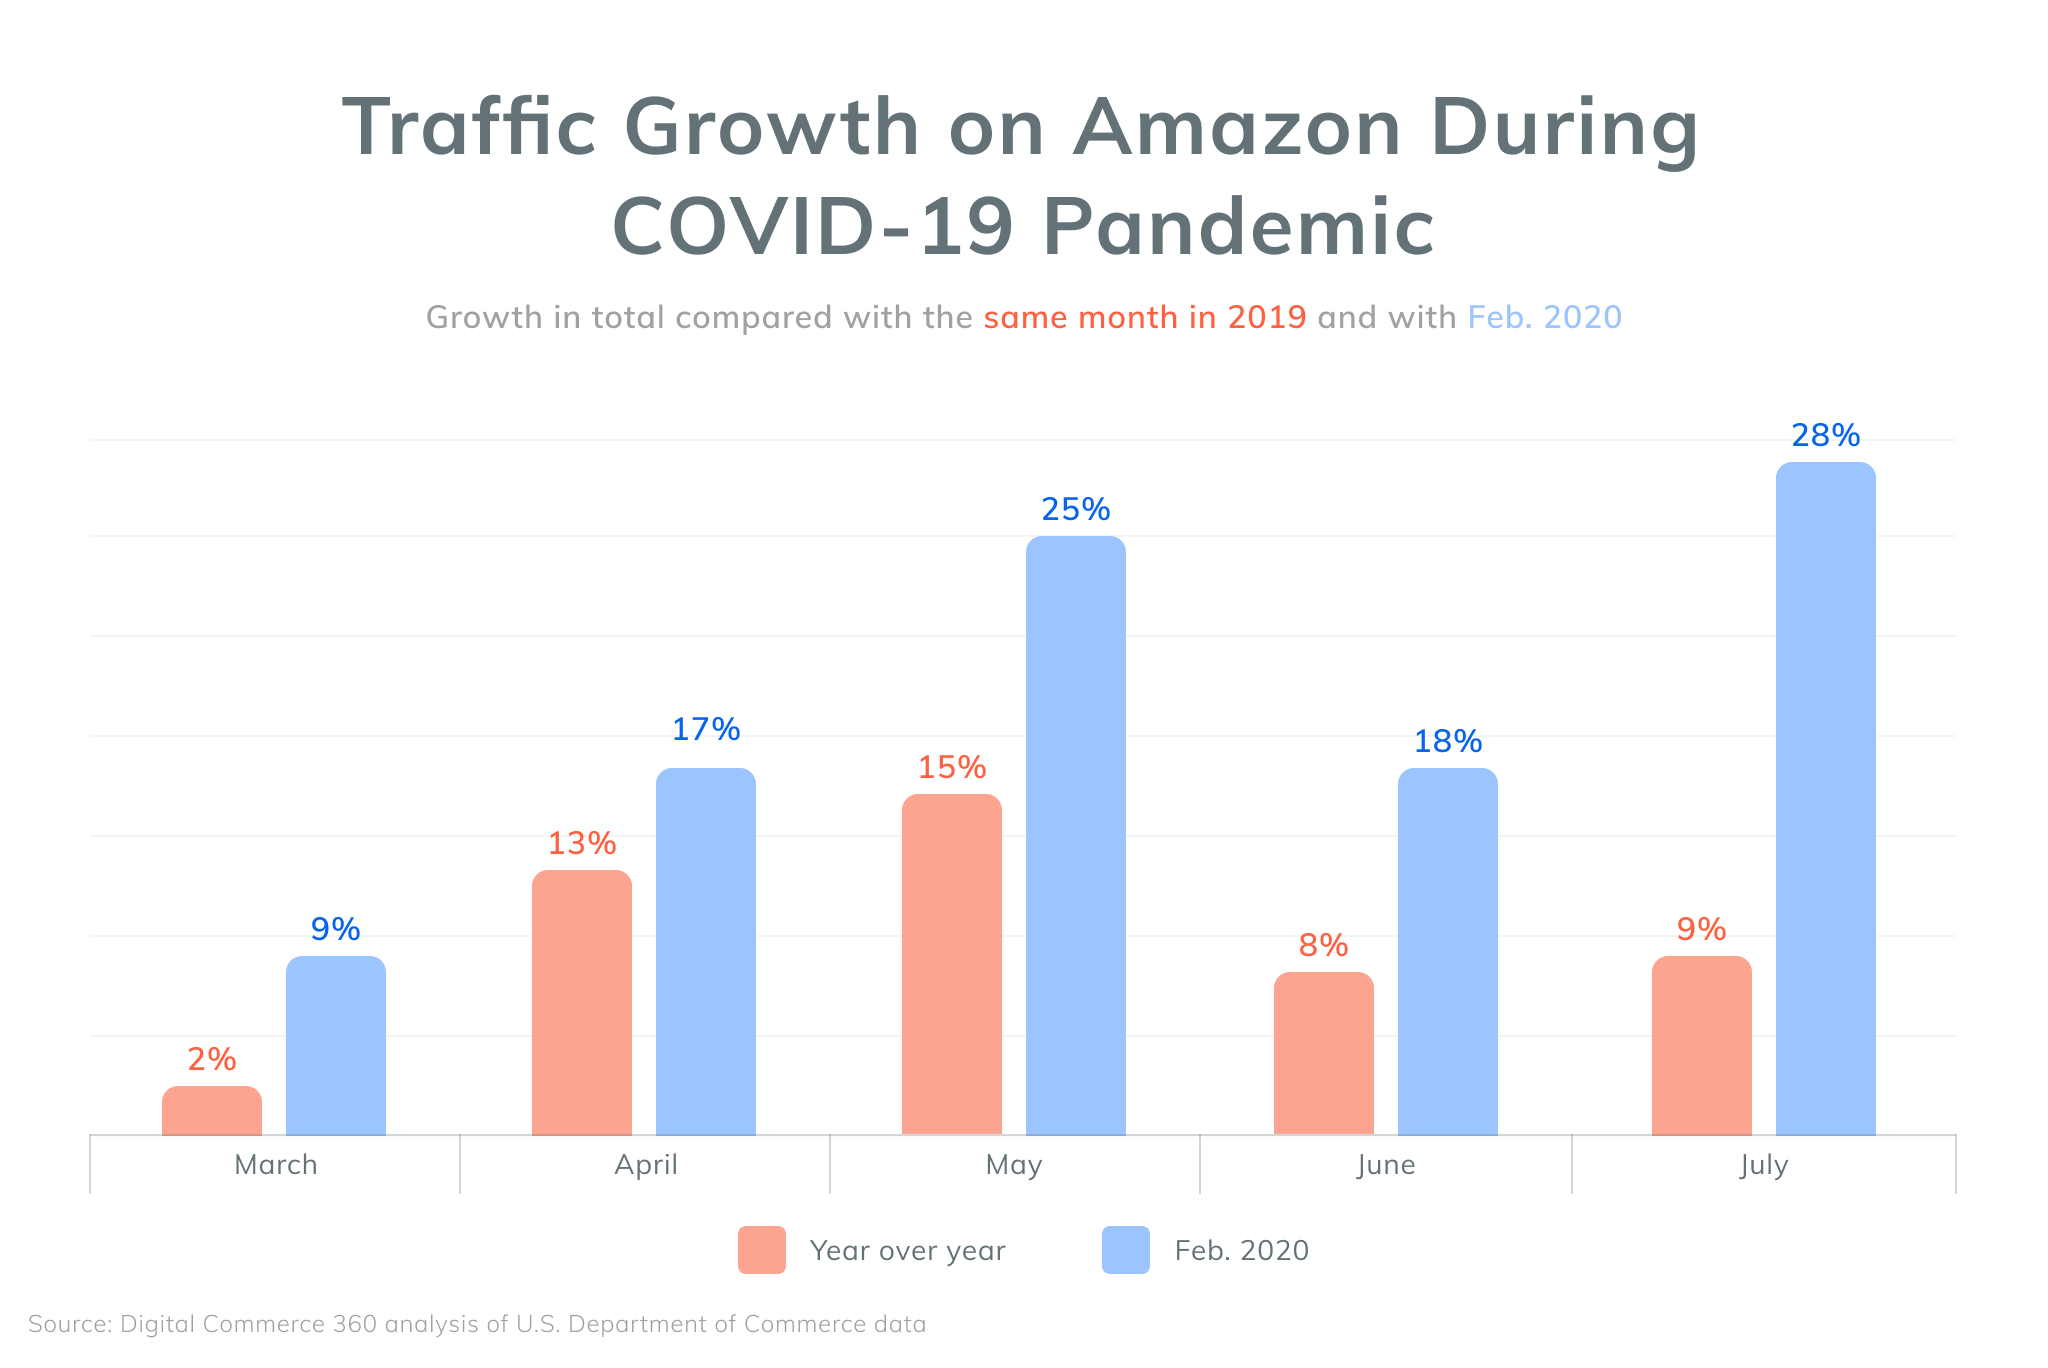 Traffic Growth on Amazon During COVID-19 Pandemic